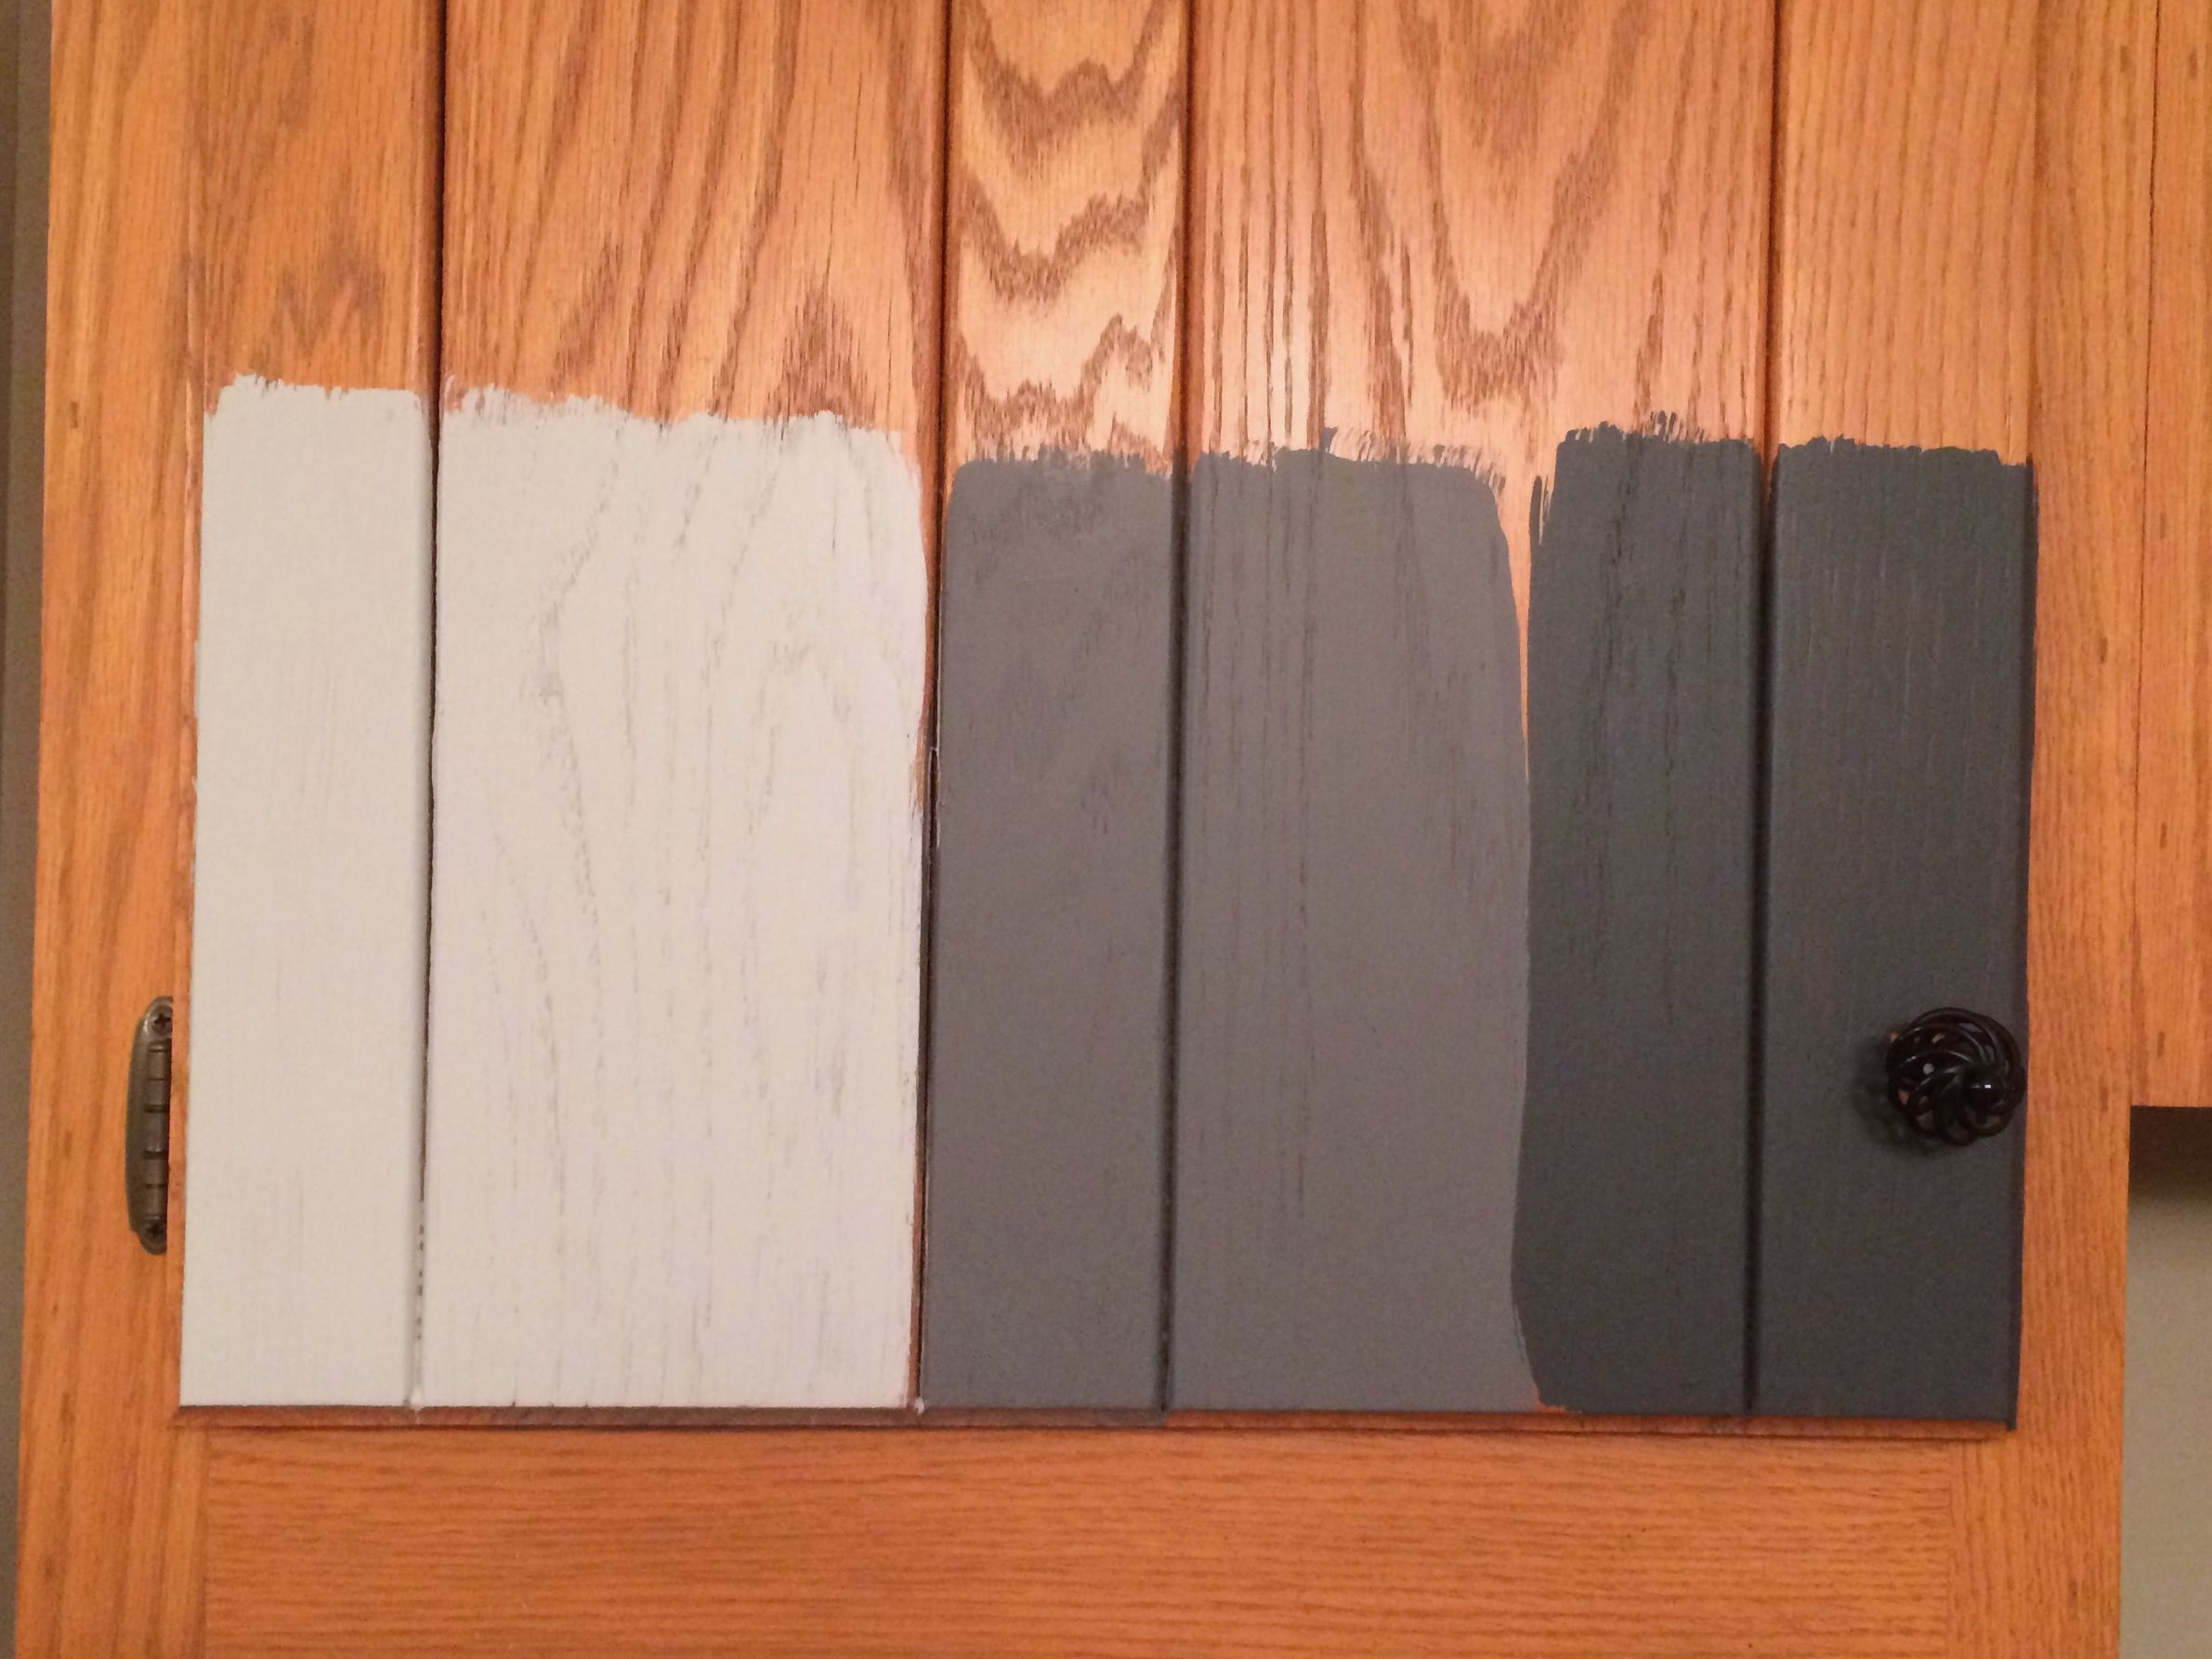 repainting kitchen cabinets How to Paint Kitchen Cabinets without sanding or priming